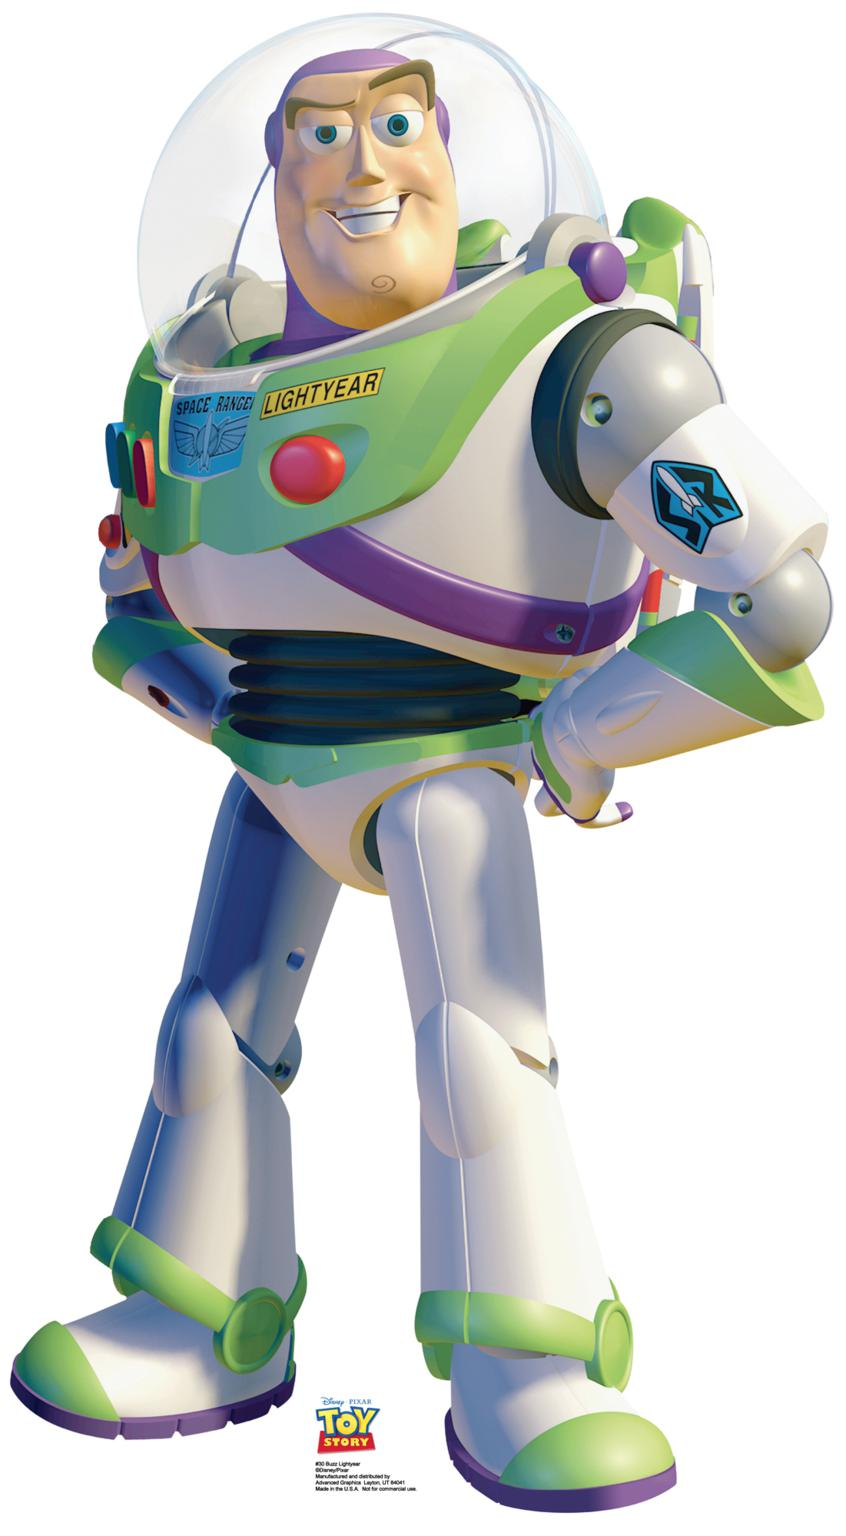 Free Download Buzz Lightyear Picture Buzz Lightyear Image